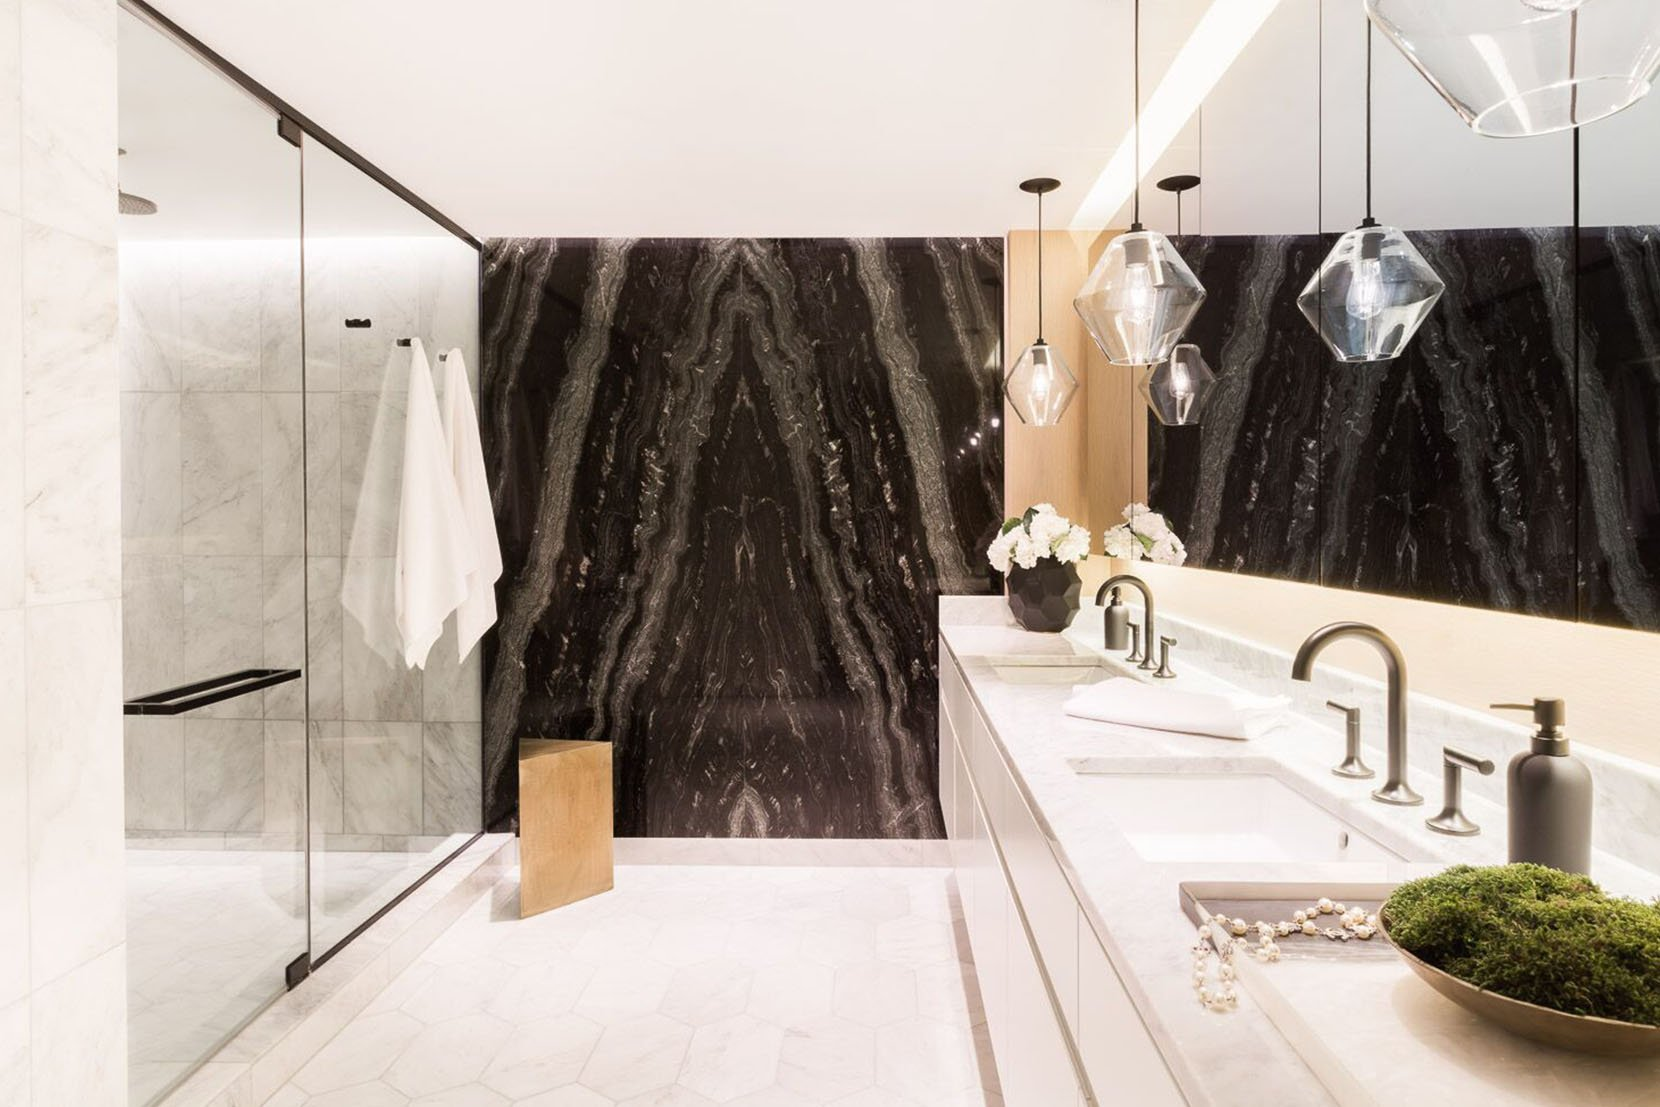 Modern-Bathroom-Lighting-Project-Pages-Tower-Crystal-Troves.jpg